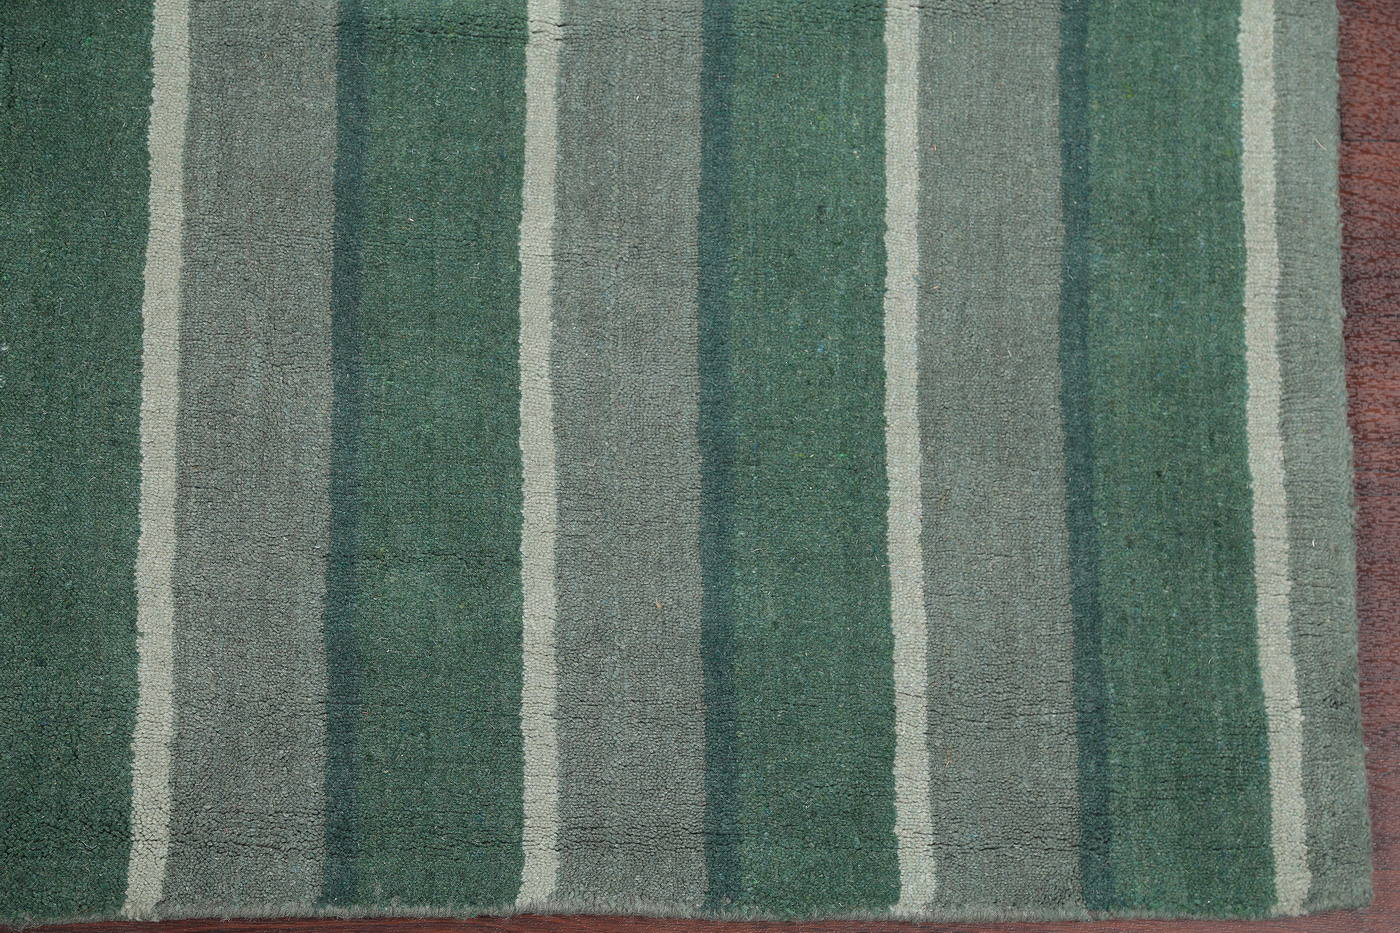 Contemporary Tufted Indian Oriental Area Rug 6x8